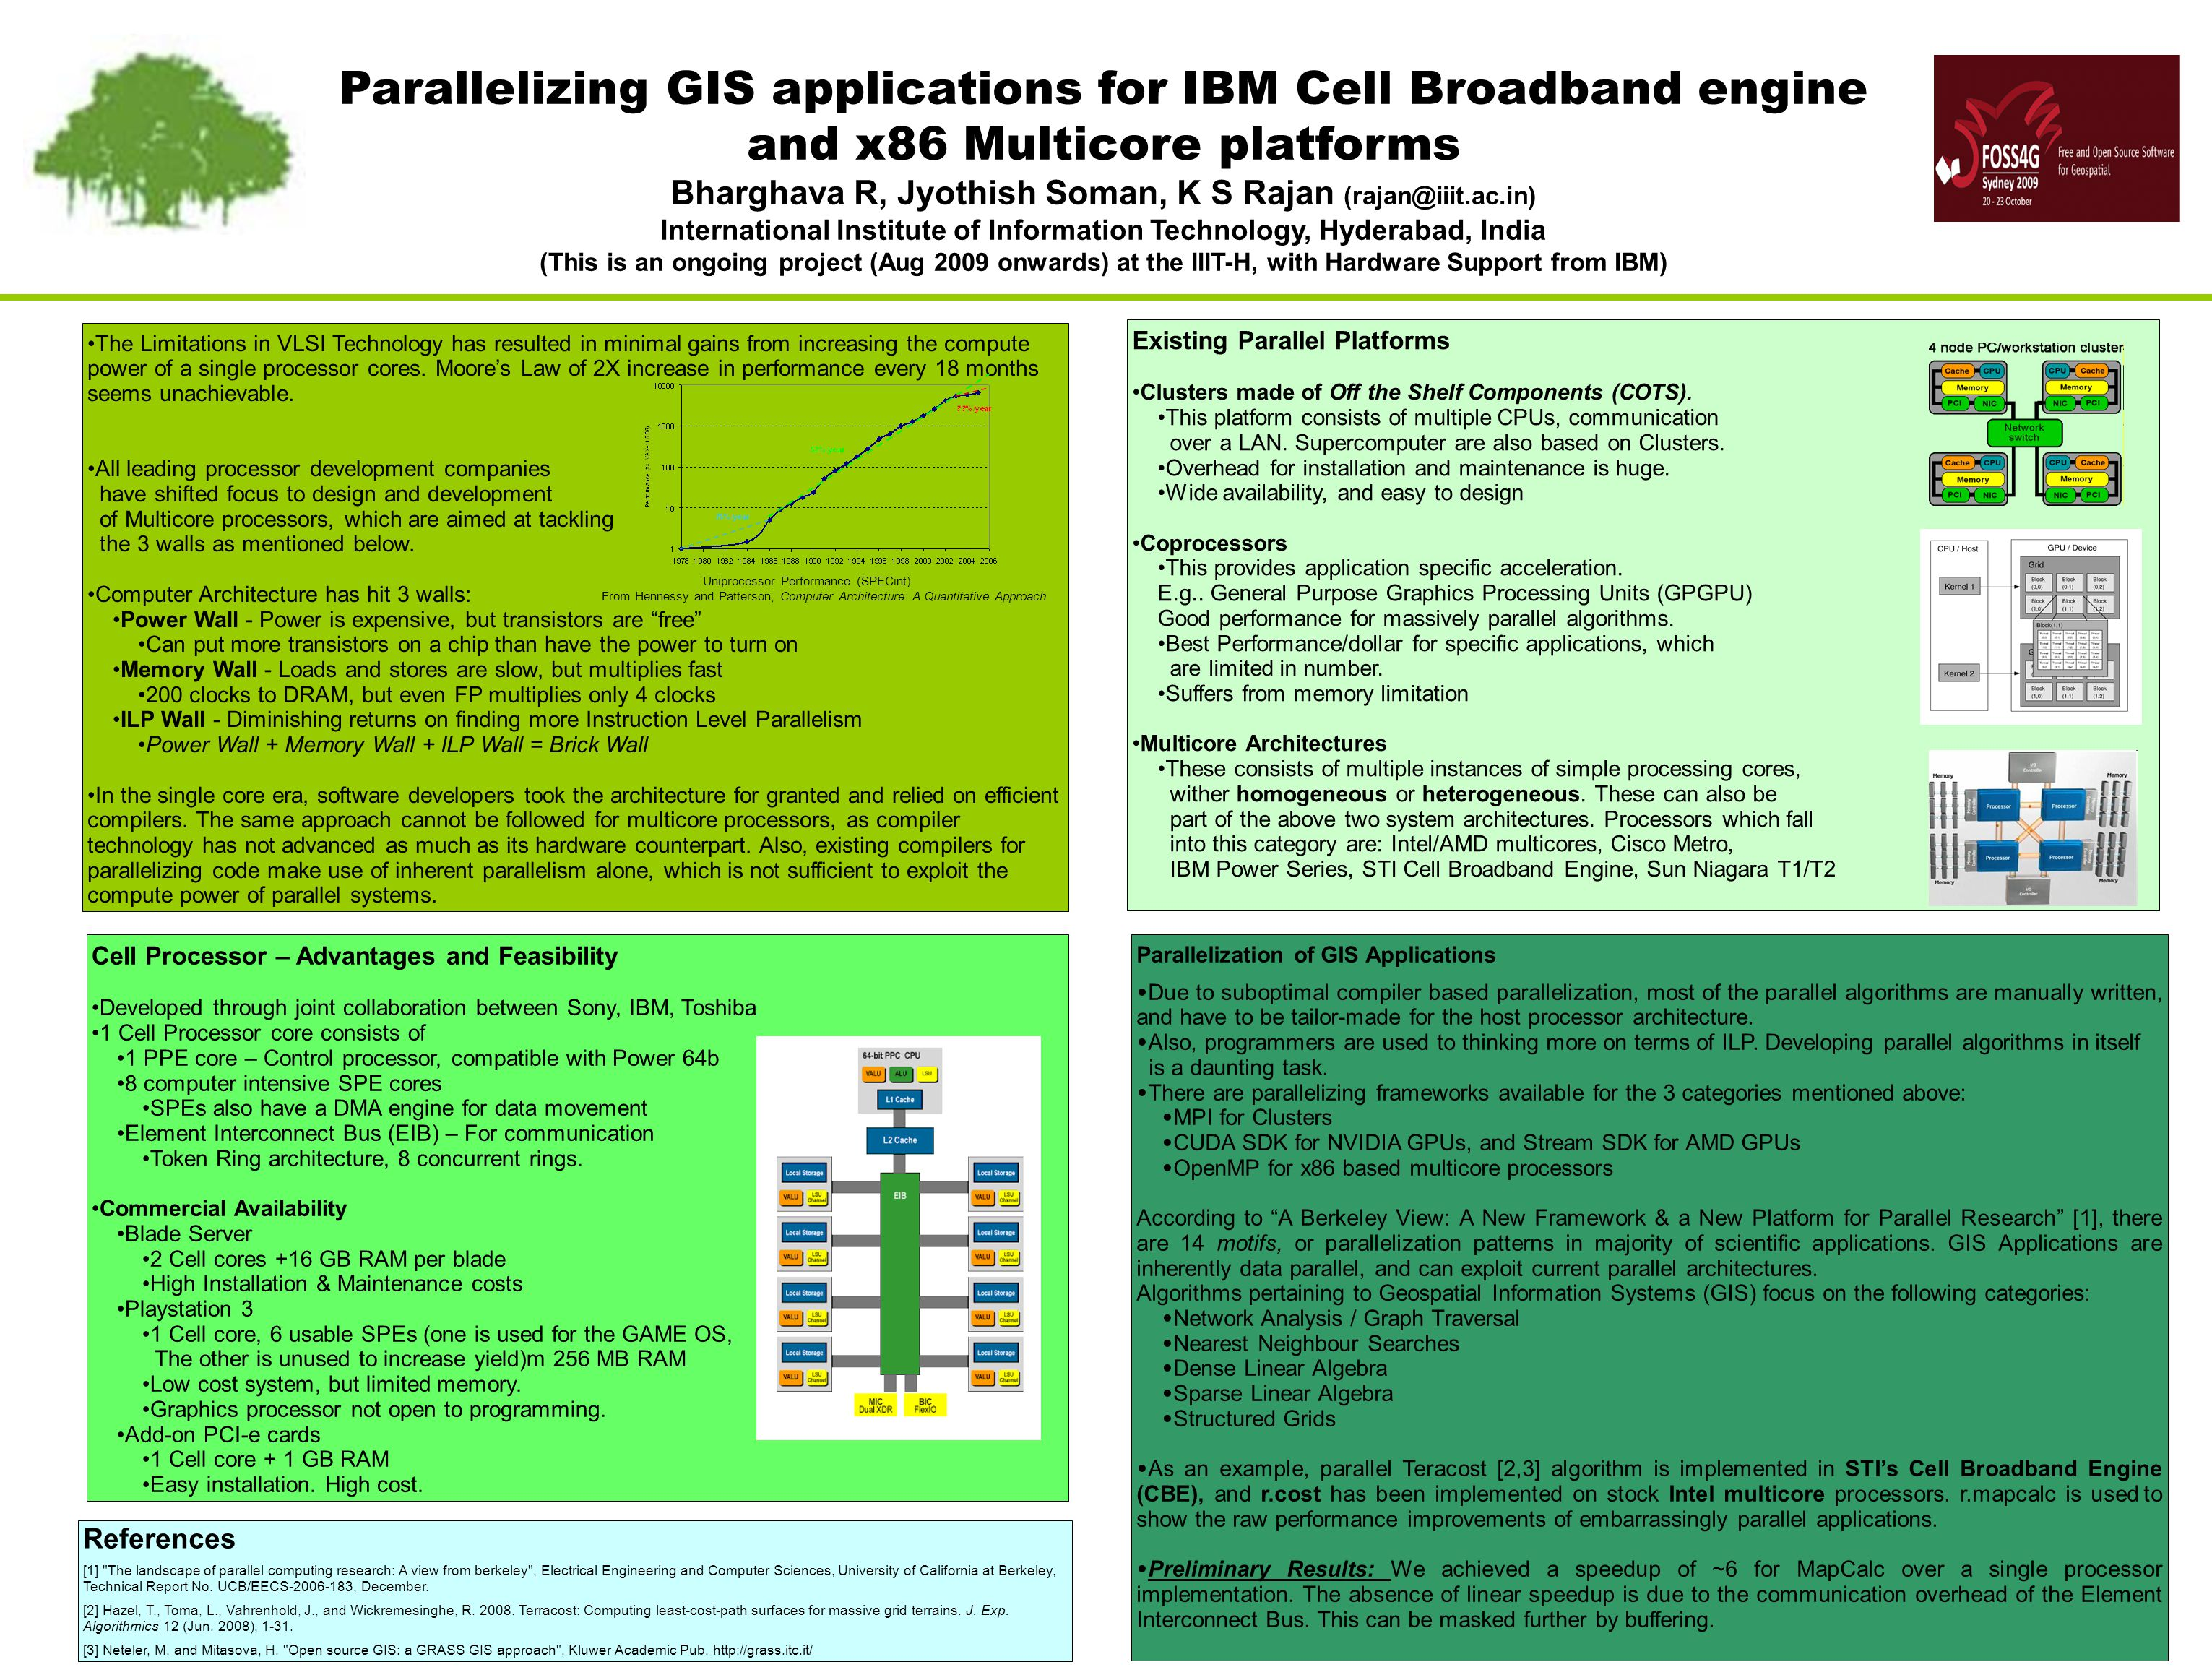 Parallelizing GIS applications for IBM Cell Broadband engine and x86 Multicore platforms Bharghava R, Jyothish Soman, K S Rajan (rajan@iiit.ac.in) International Institute of Information Technology, Hyderabad, India (This is an ongoing project (Aug 2009 onwards) at the IIIT-H, with Hardware Support from IBM) The Limitations in VLSI Technology has resulted in minimal gains from increasing the compute power of a single processor cores.